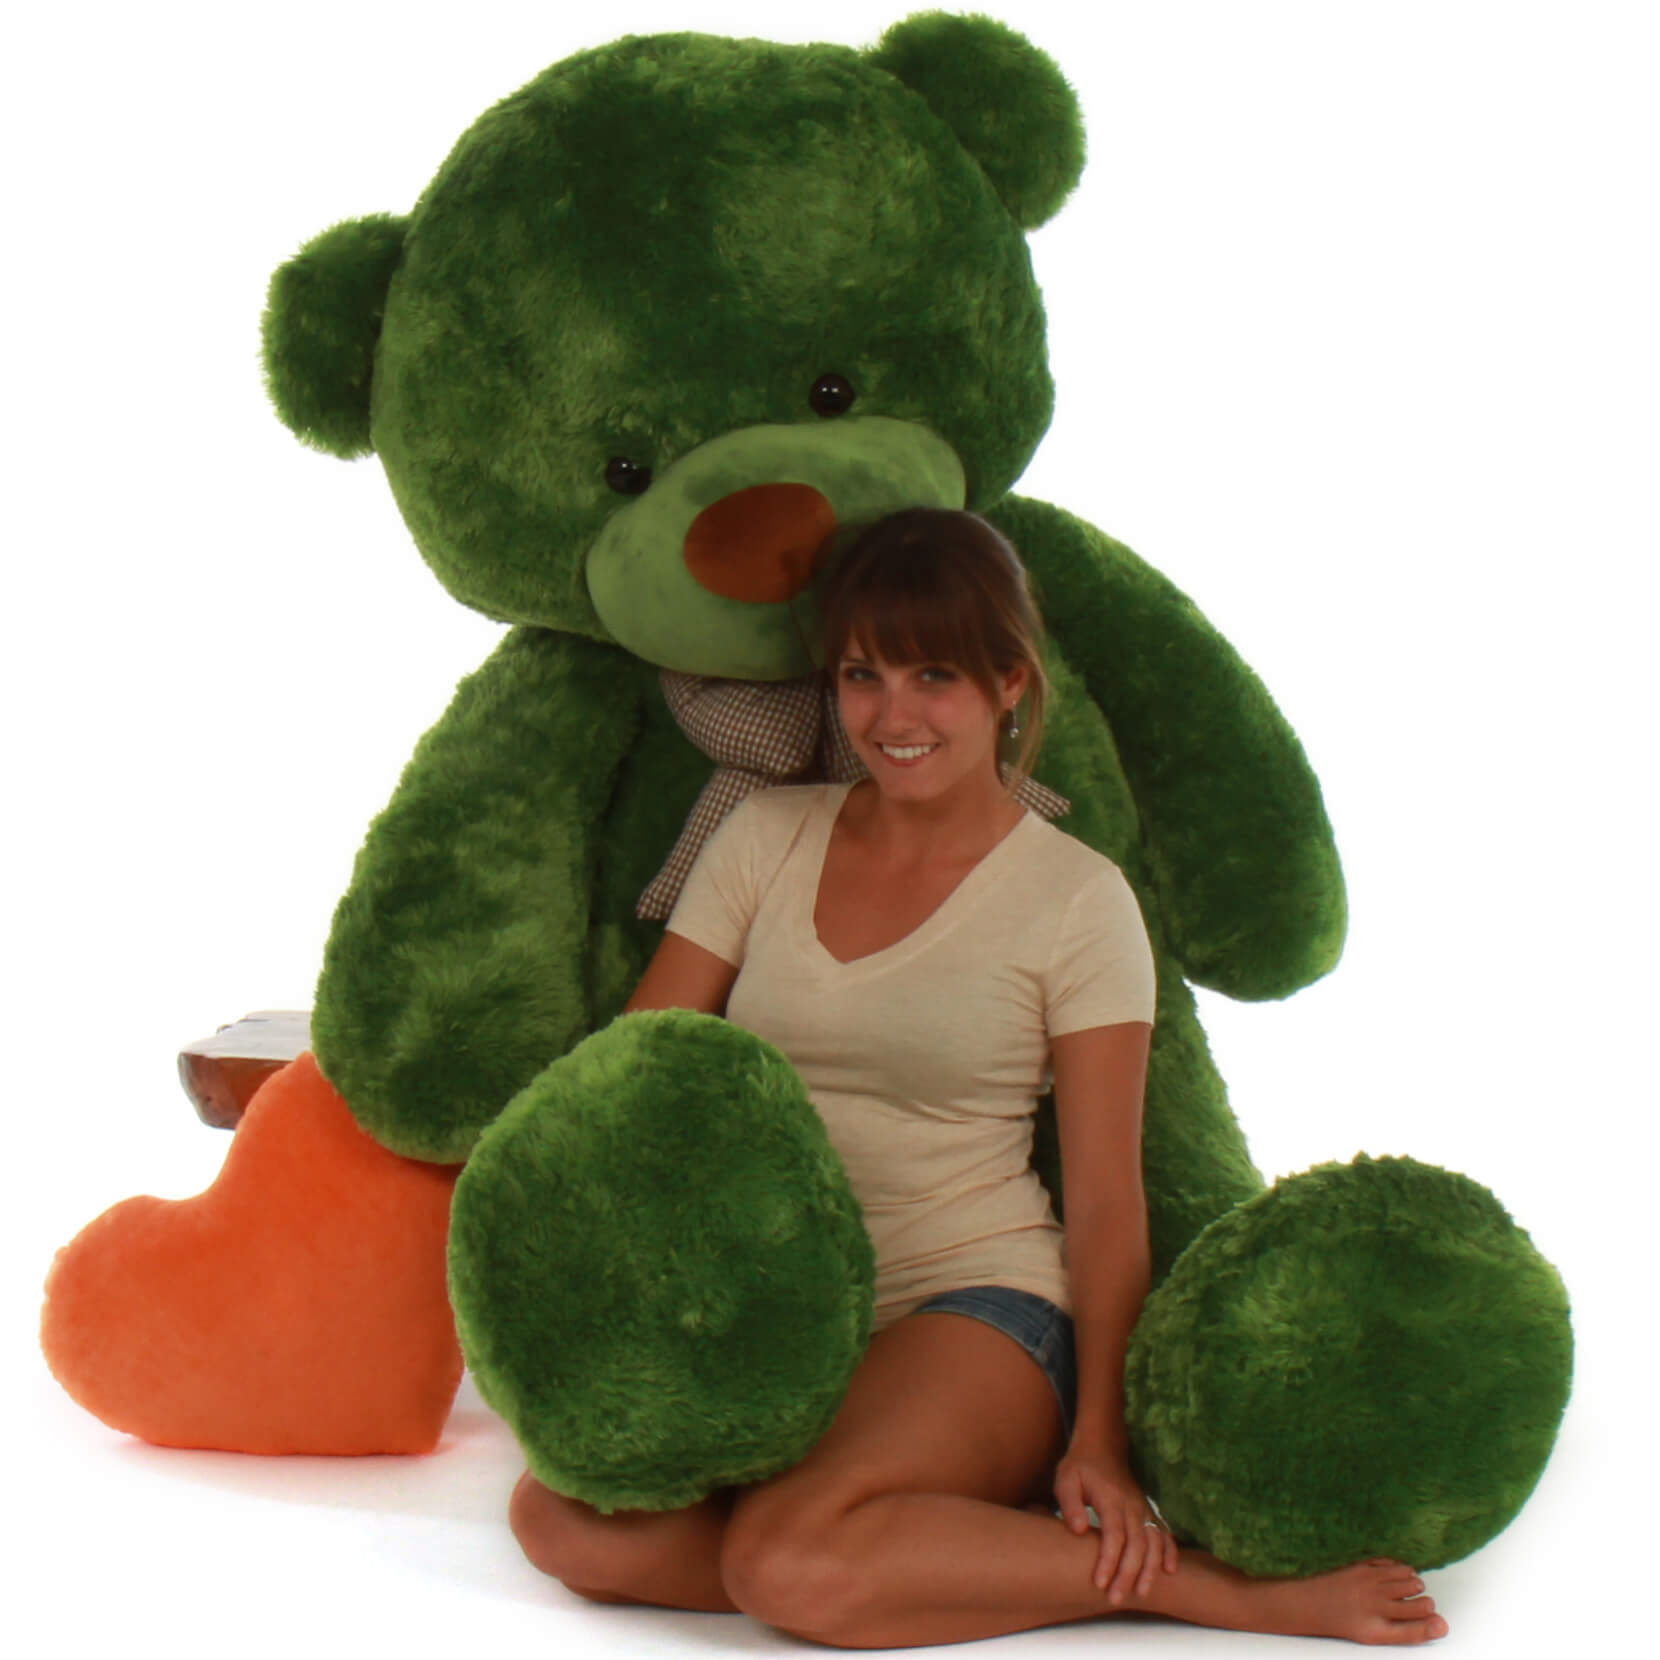 72in-life-size-green-lucky-teddy-bear-cuddles-huggable-and-soft-1.jpg